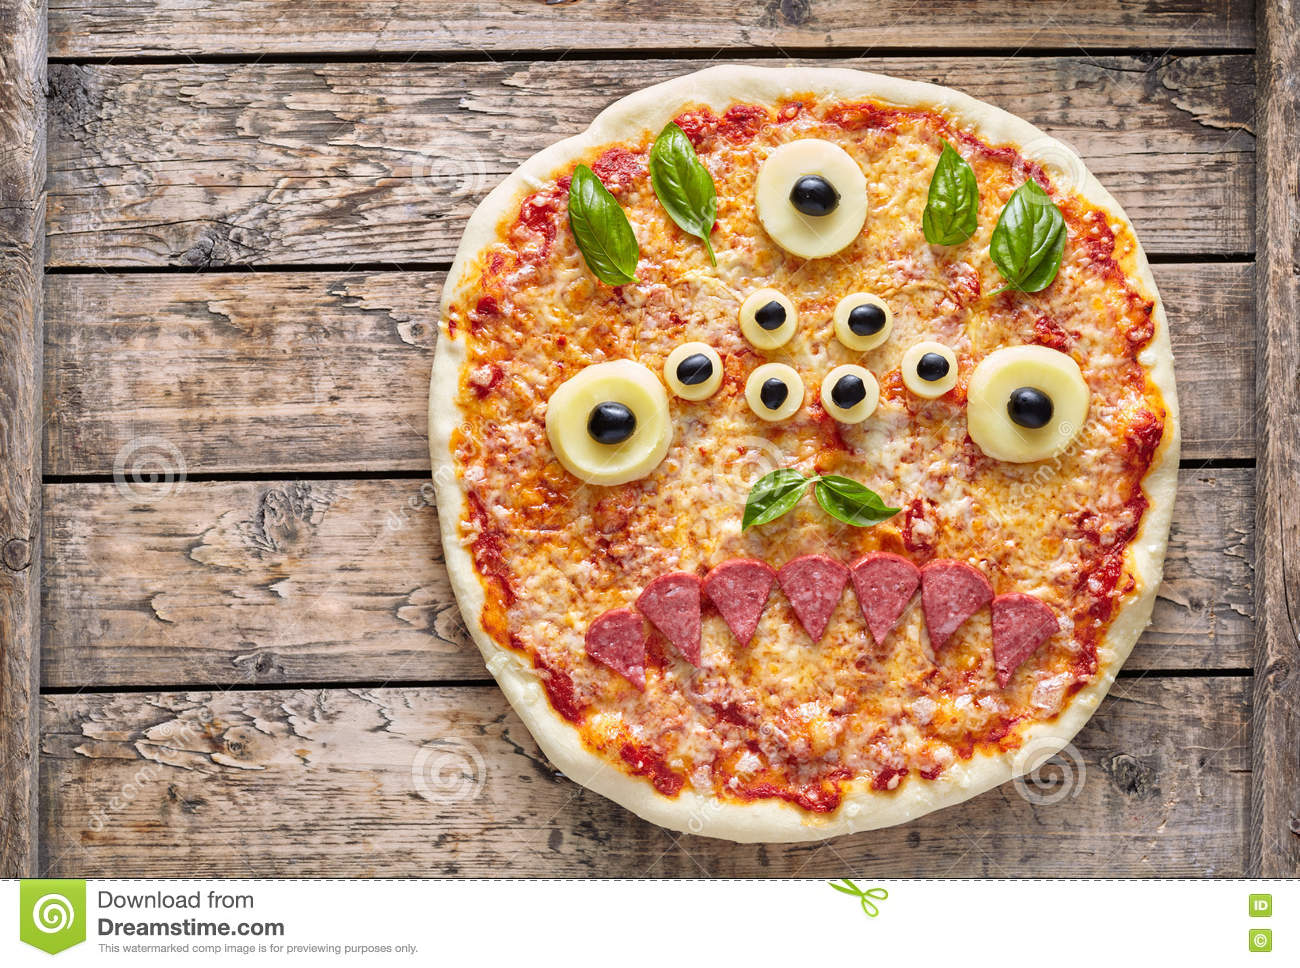 Halloween creative scary food eye monster zombie face pizza snack with mozzarella